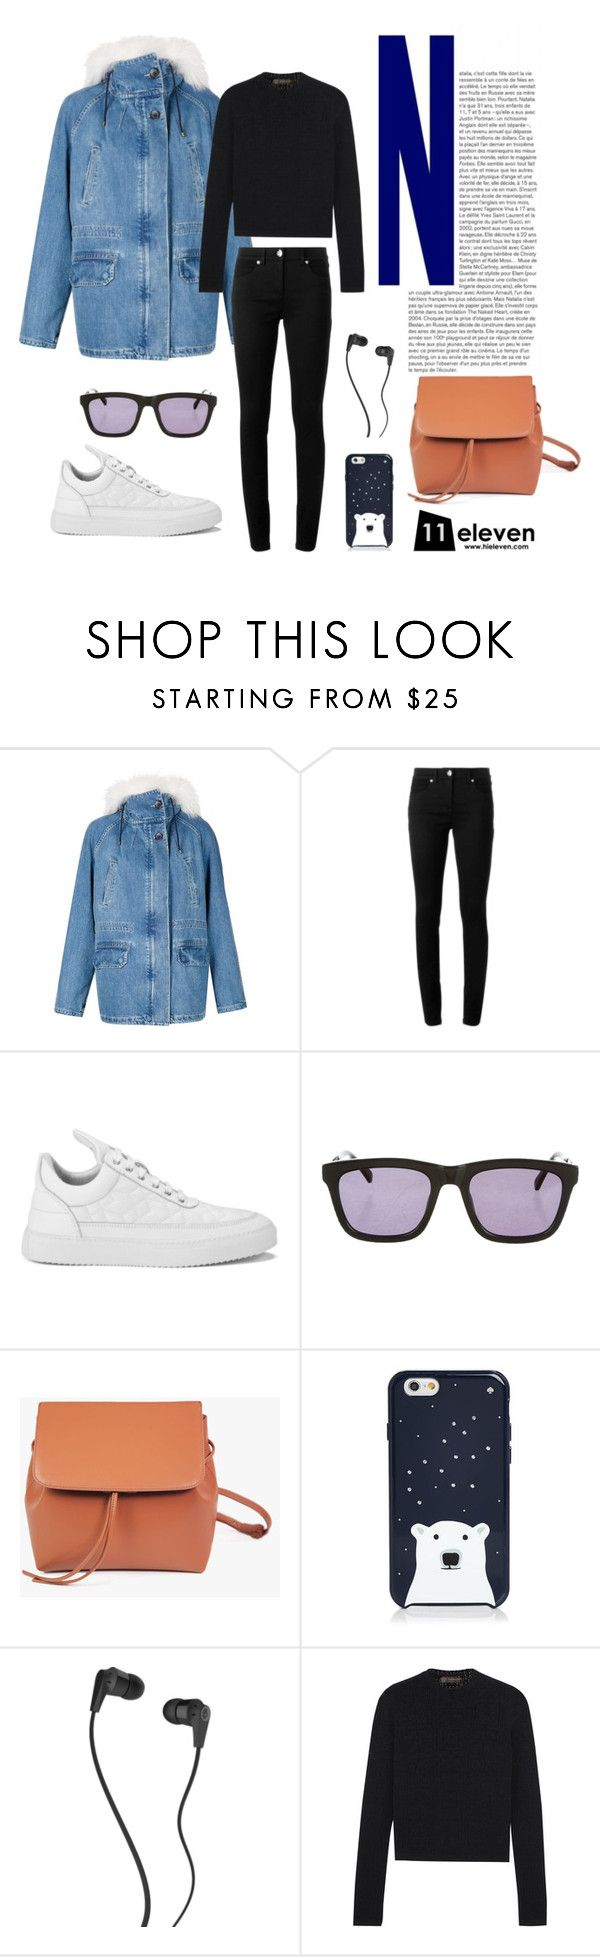 """""""Fur Trimmed Denim Parka × White Low Top Sneakers"""" by hielevencom ❤ liked on Polyvore featuring Yves Salomon, Versace, Filling Pieces, Karen Walker, Kate Spade, Skullcandy, women's clothing, women's fashion, women and female"""